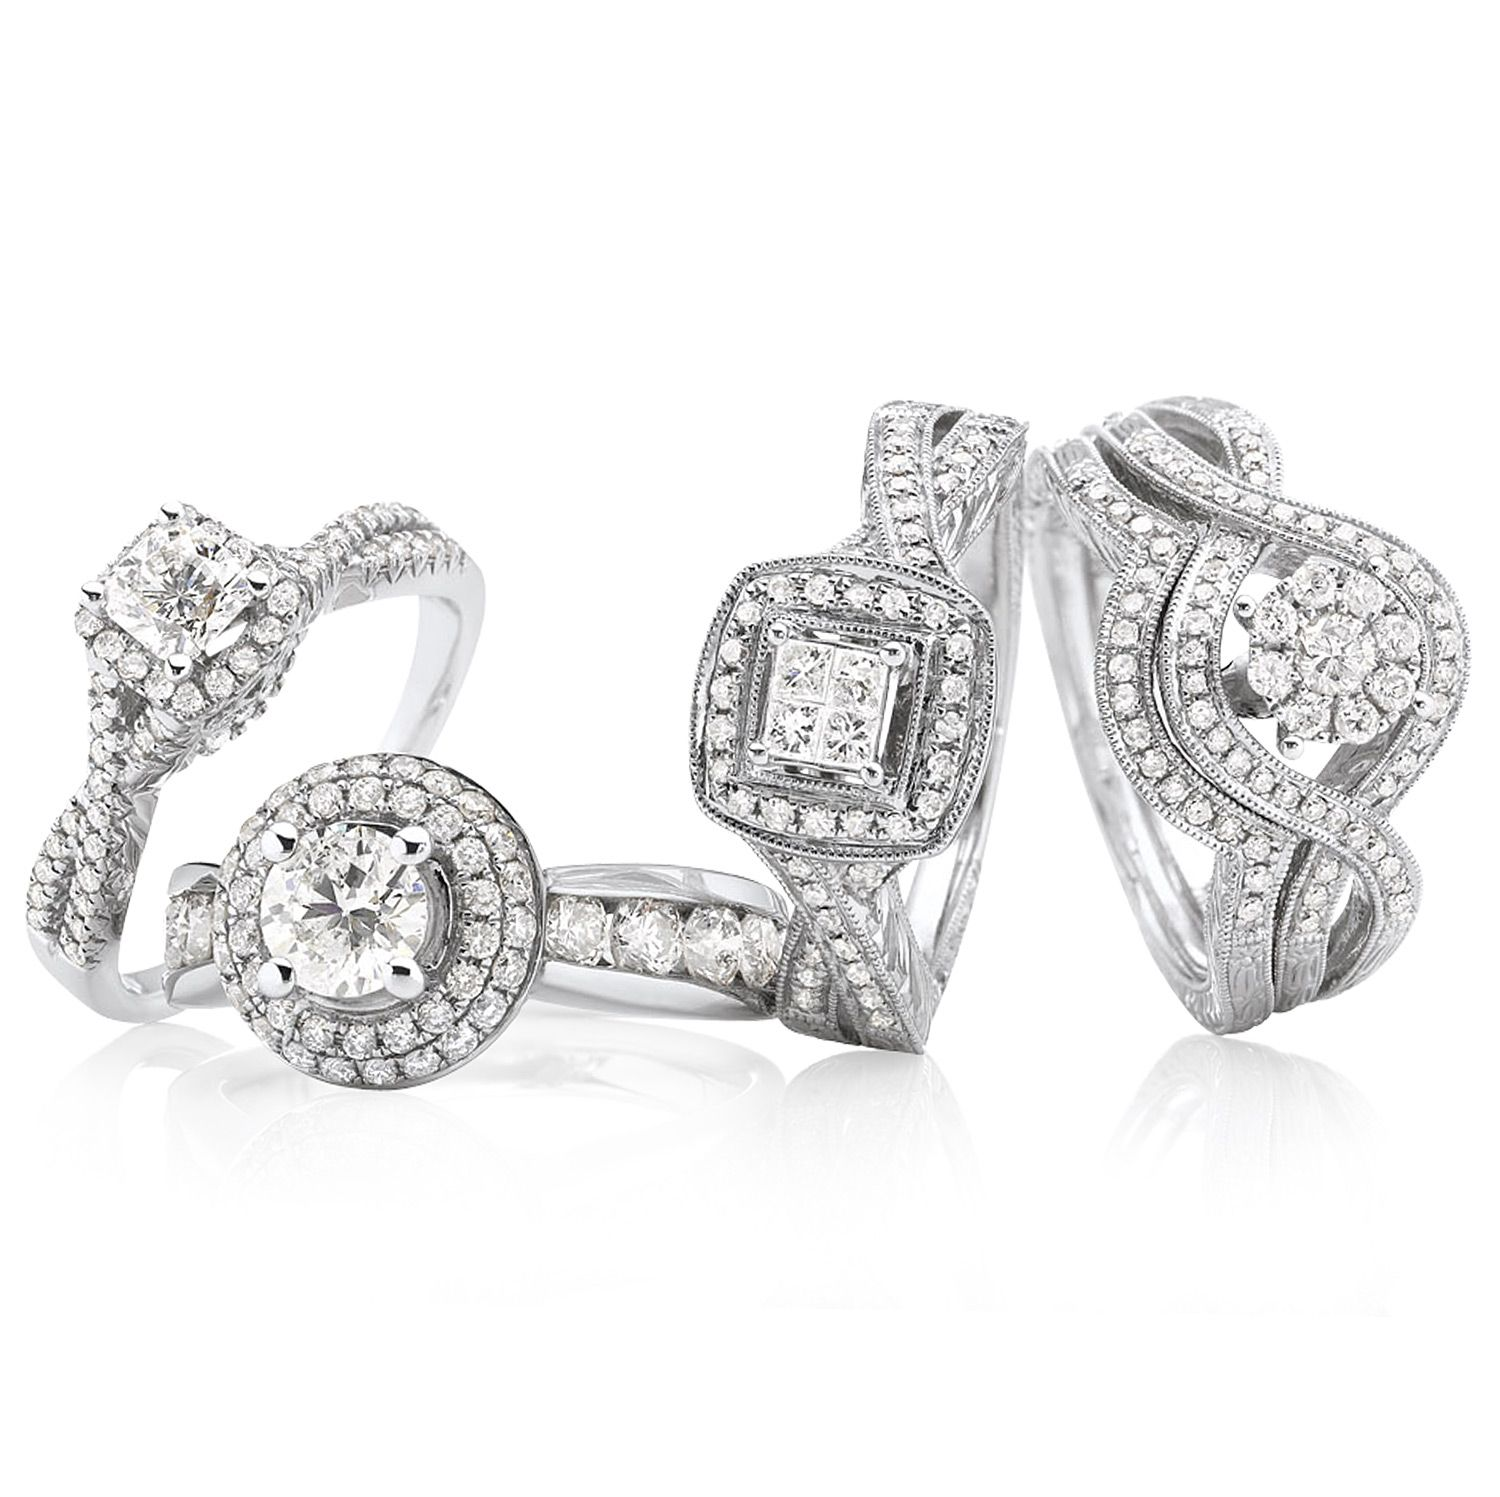 jcpenny wedding rings JCPenney put a ring on it modern bride true love and cherished hearts diamond ring collections